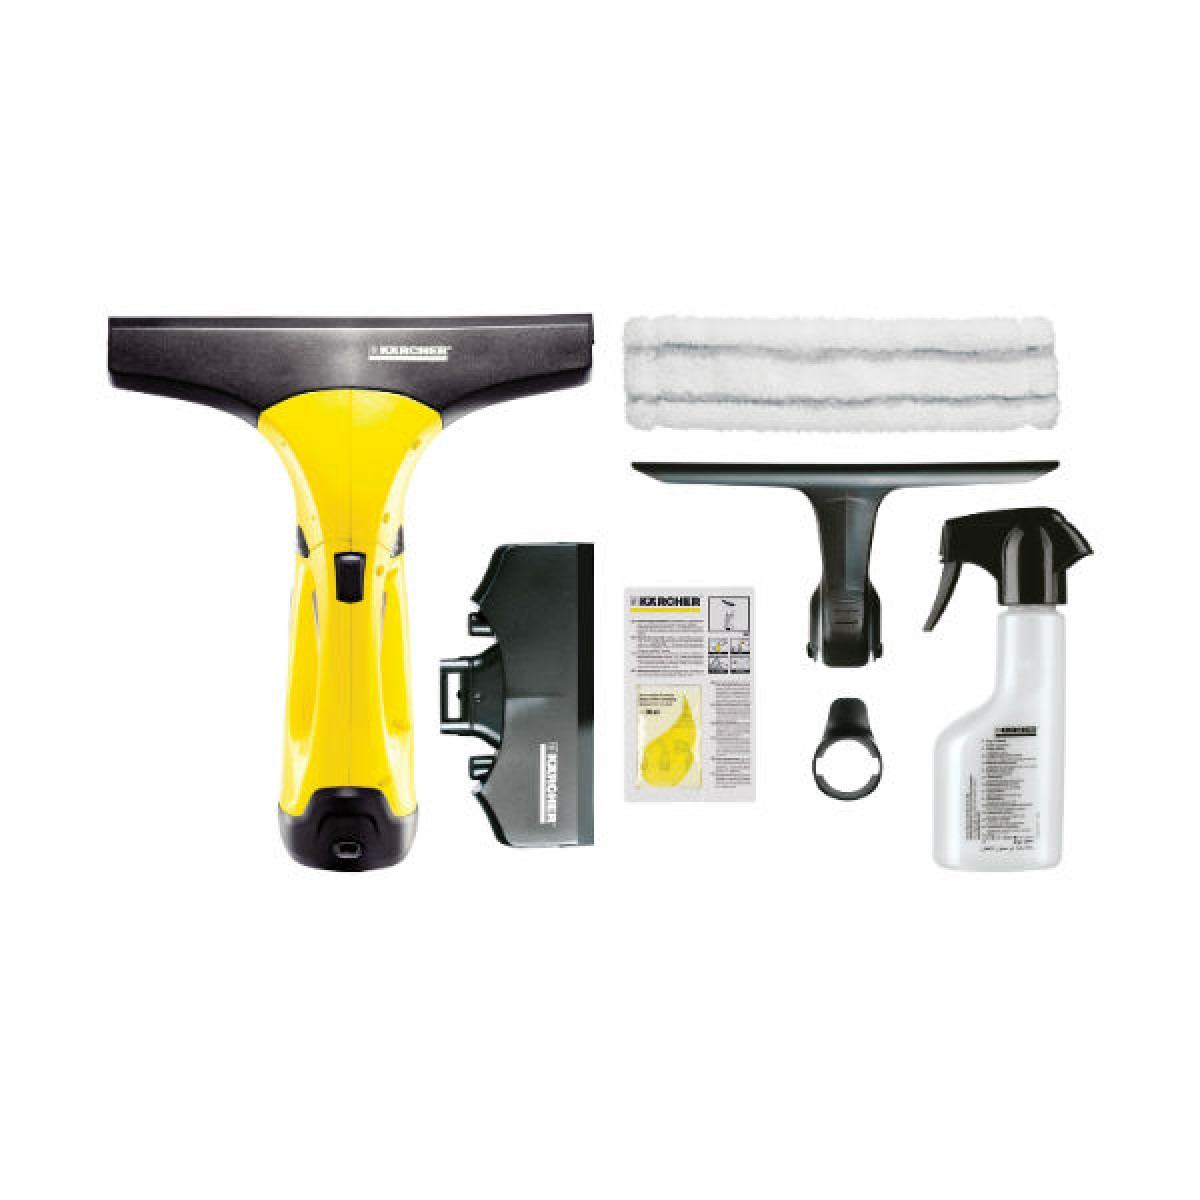 karcher wv2 premium 2nd generation window vacuum cleaner. Black Bedroom Furniture Sets. Home Design Ideas